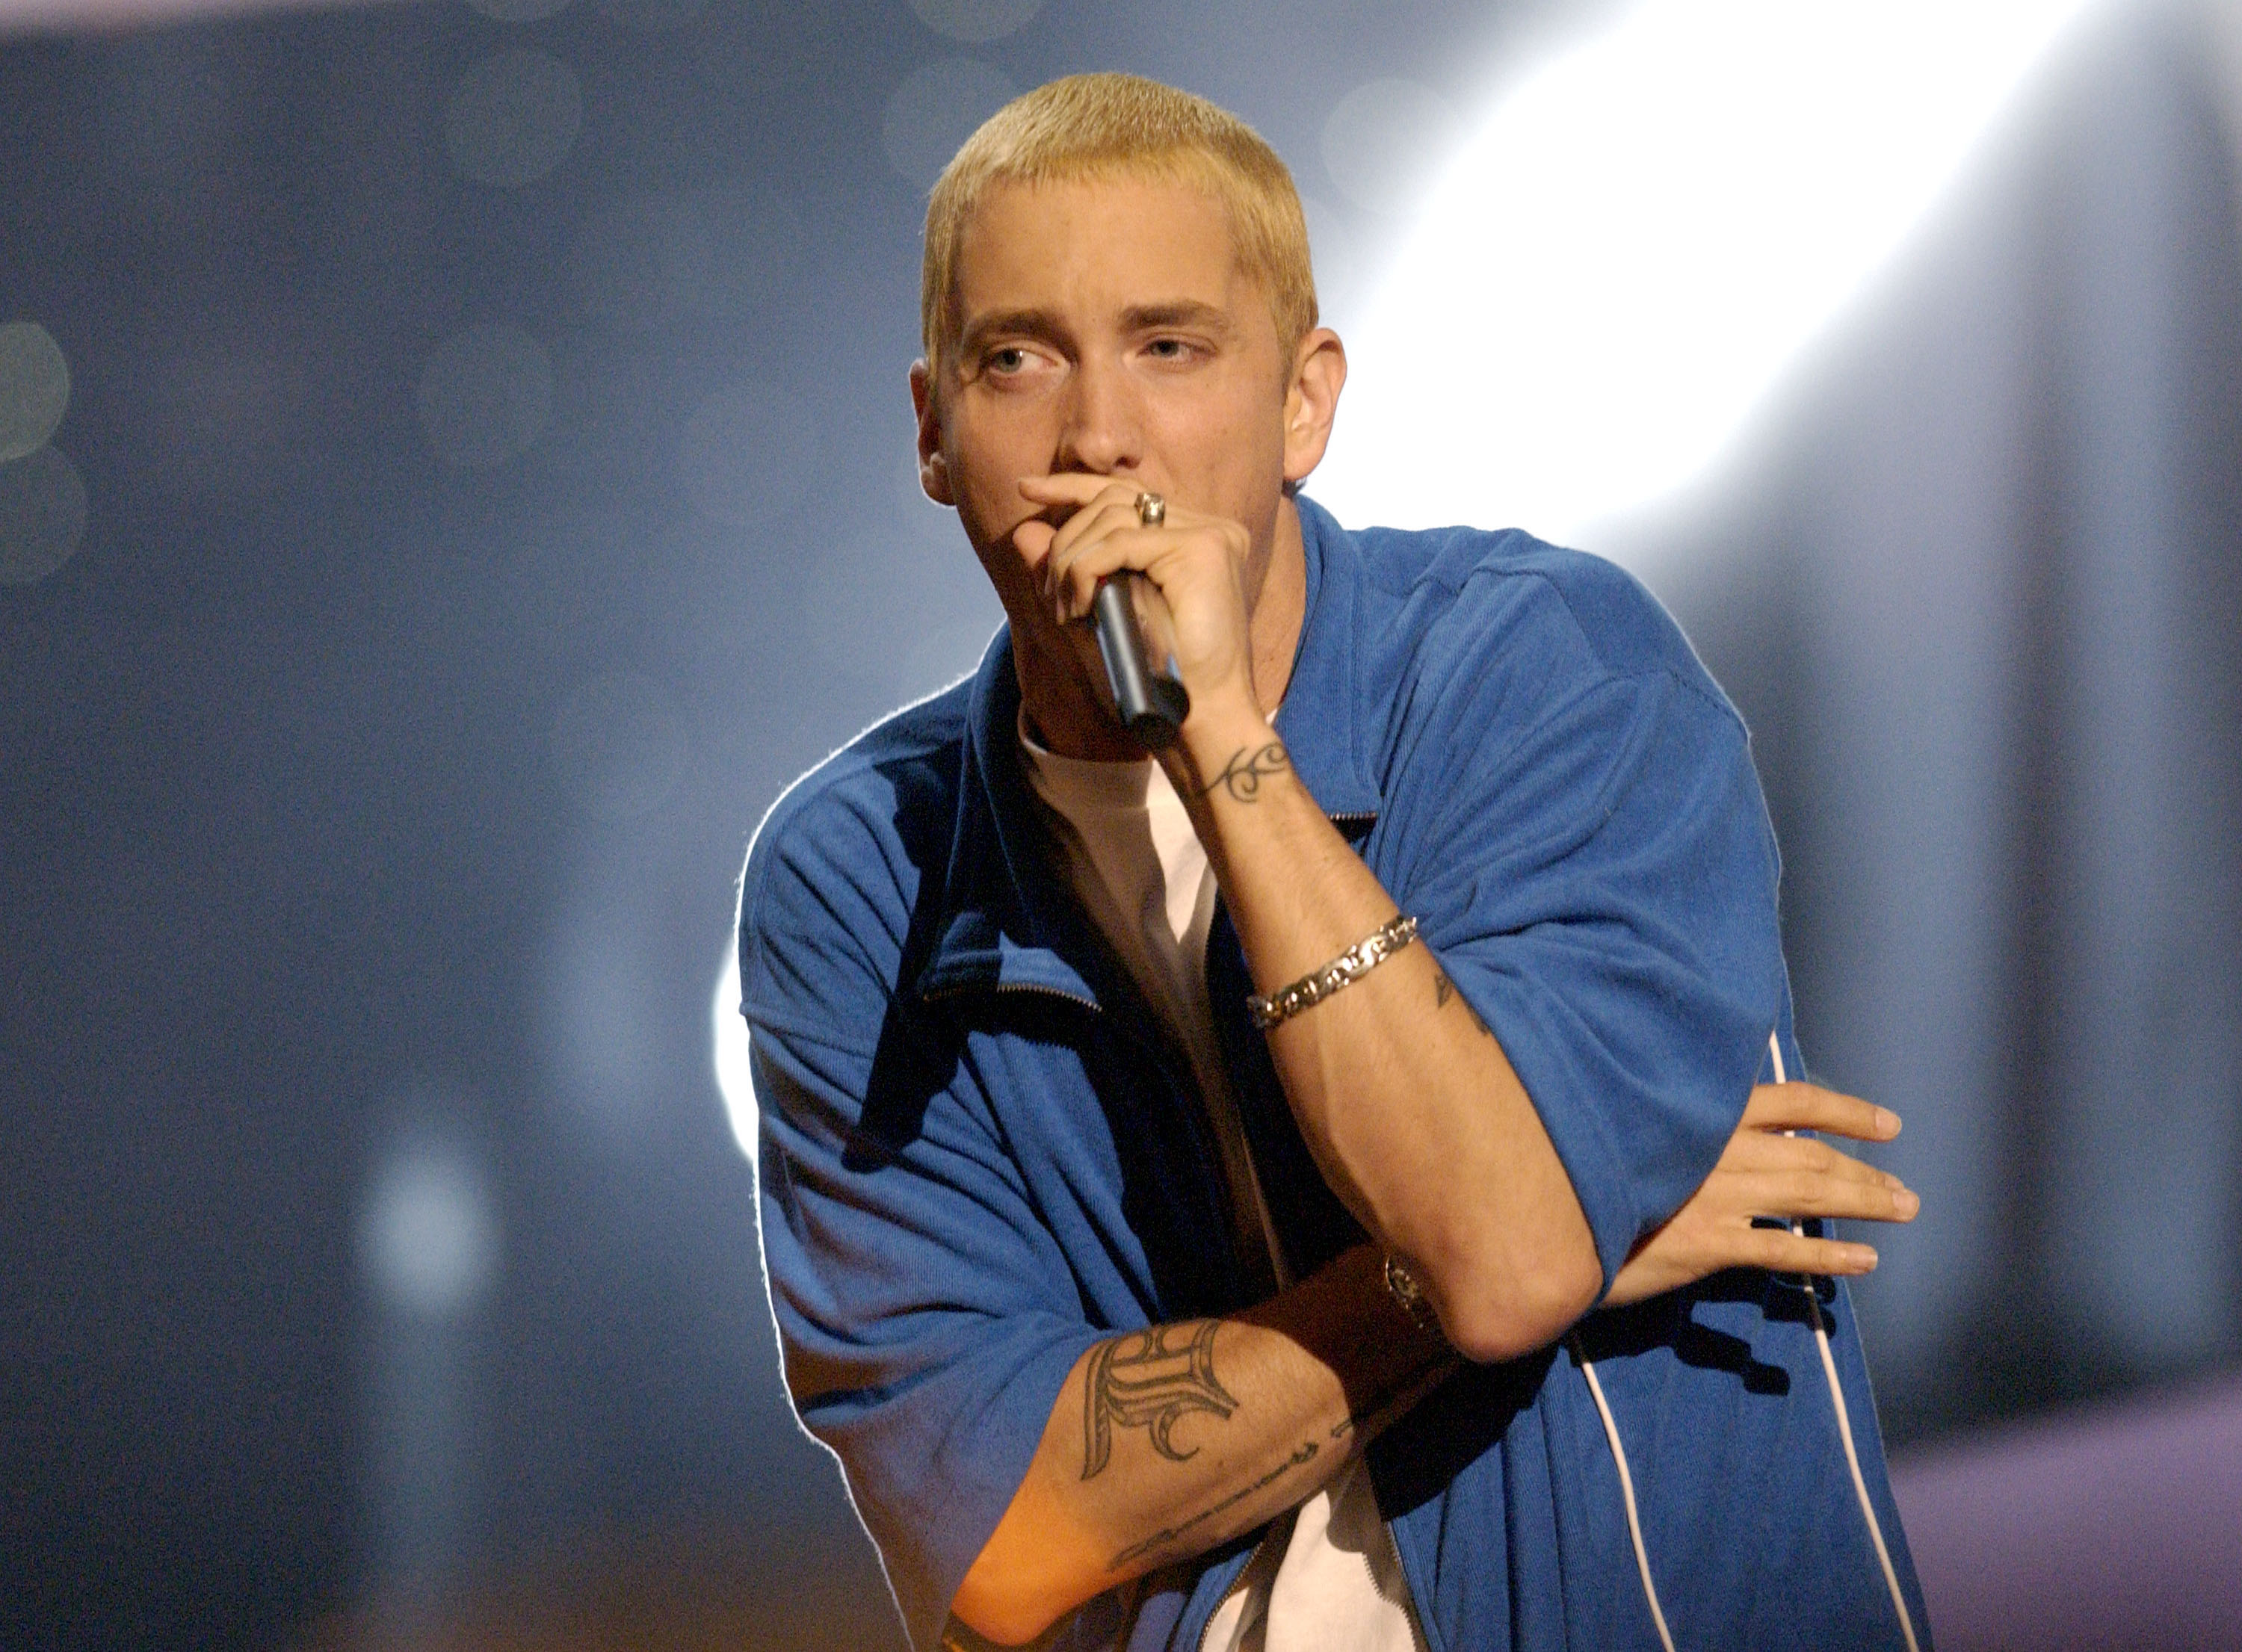 Eminem Biography, New Album, Tour, 8 Mile, Children, Ex-Wife and Net Worth Marshall Mathers